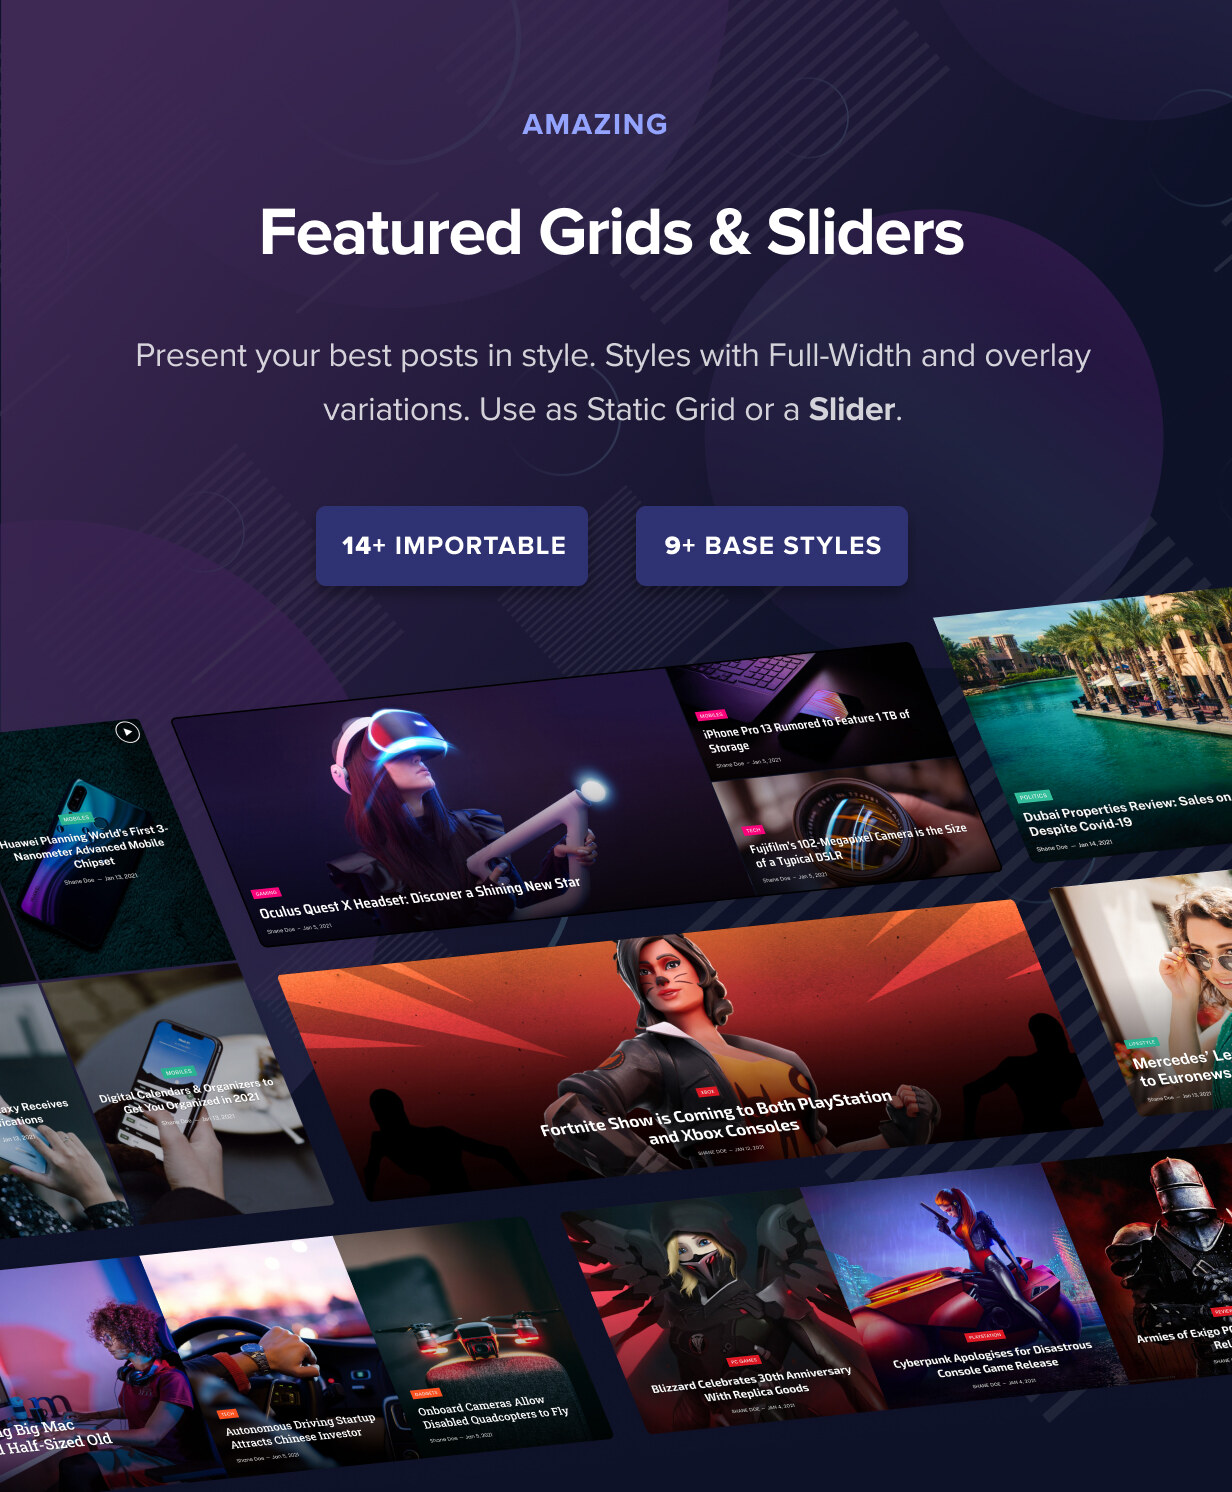 Featured Grids & Sliders